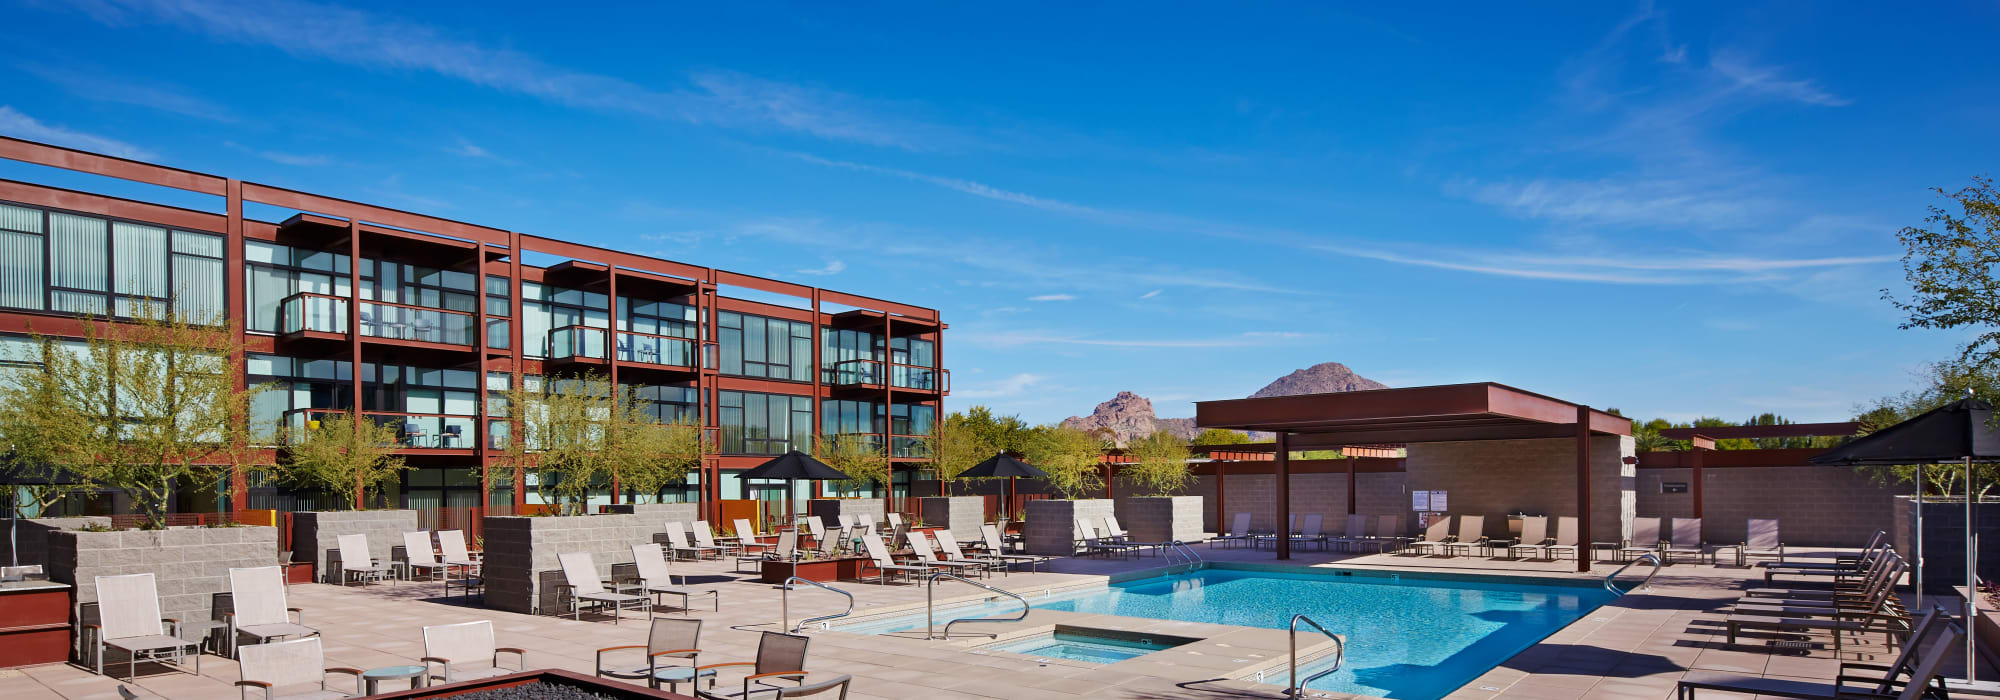 Gorgeous swimming pool area on a beautiful day at Domus in Phoenix, Arizona